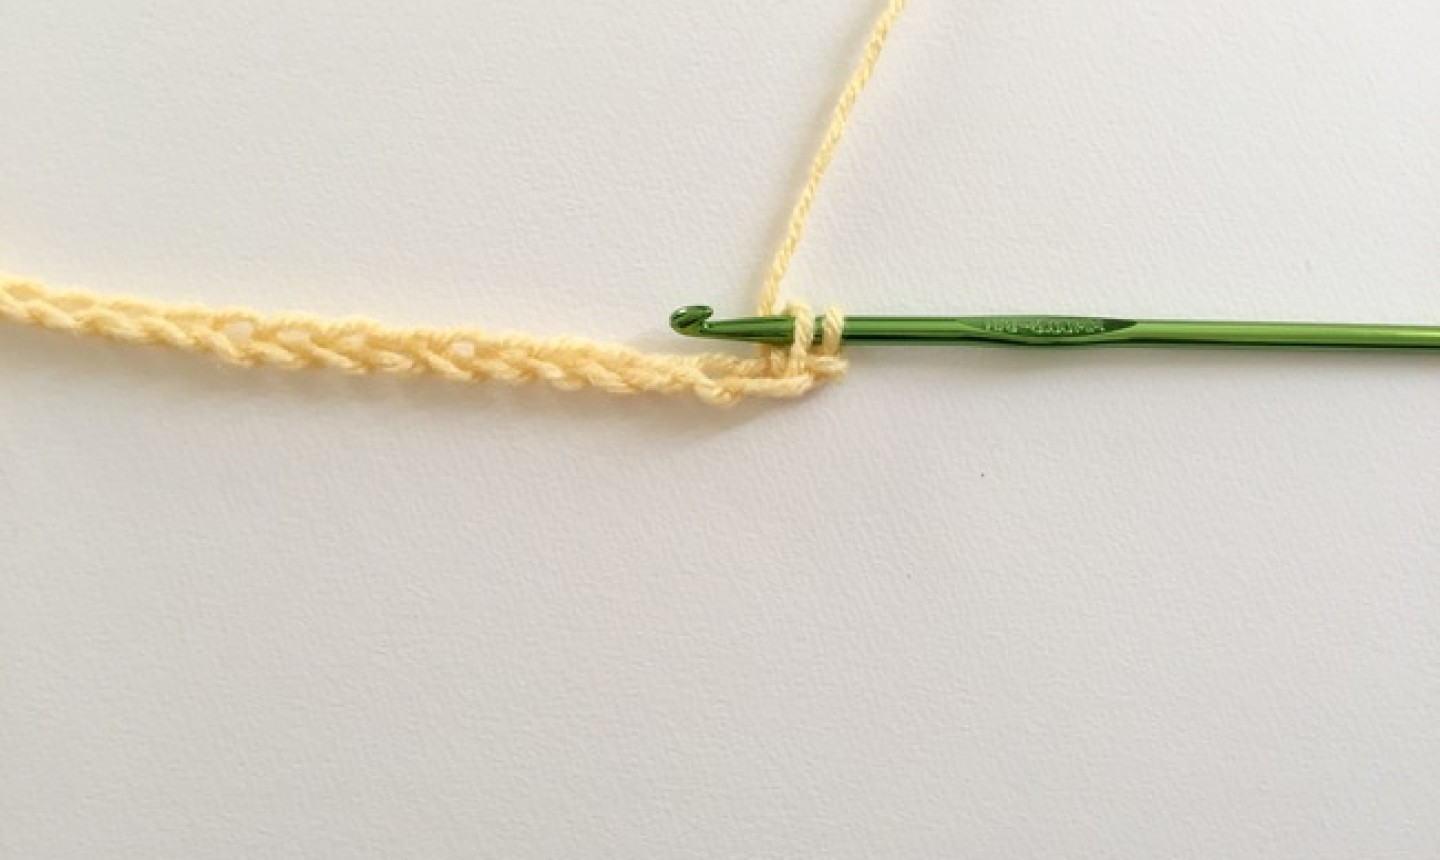 Chain of yellow yarn with green hook